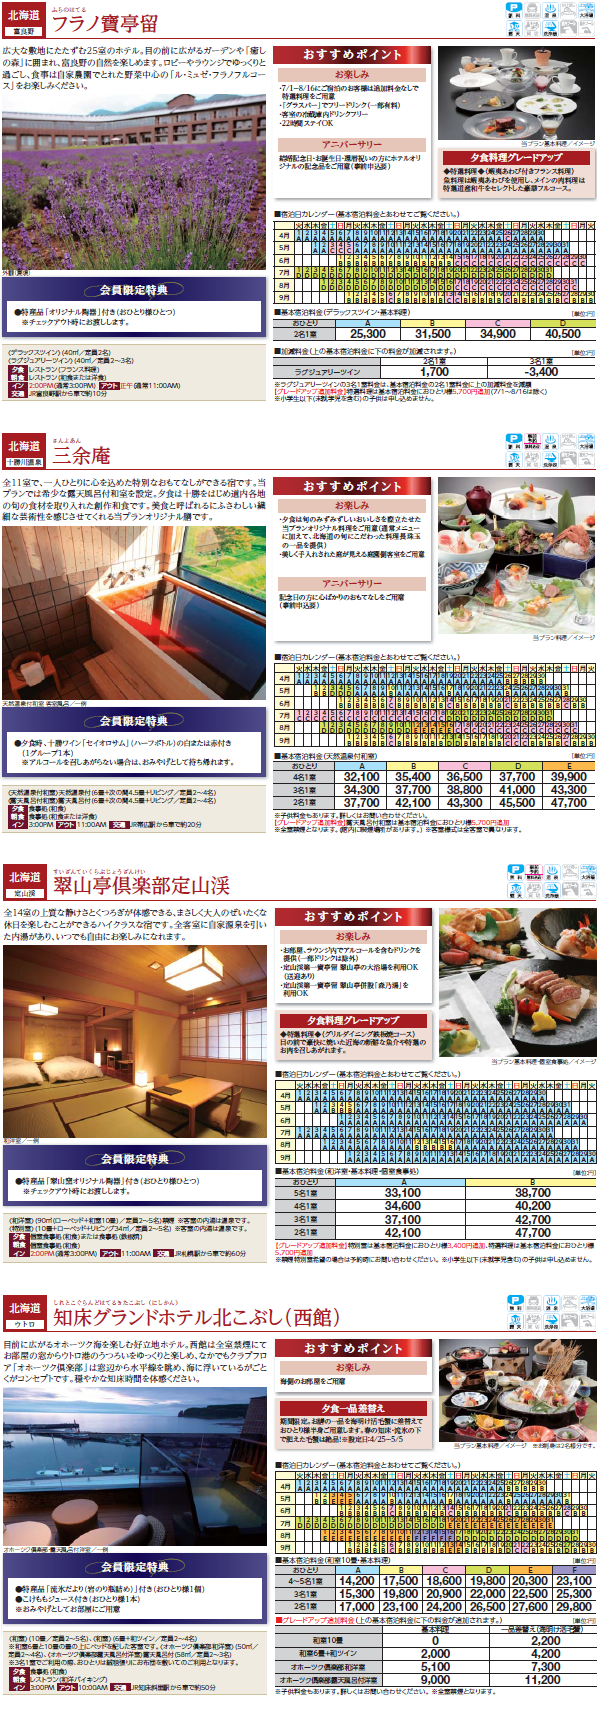 stay_plan_ryokan_1403_2